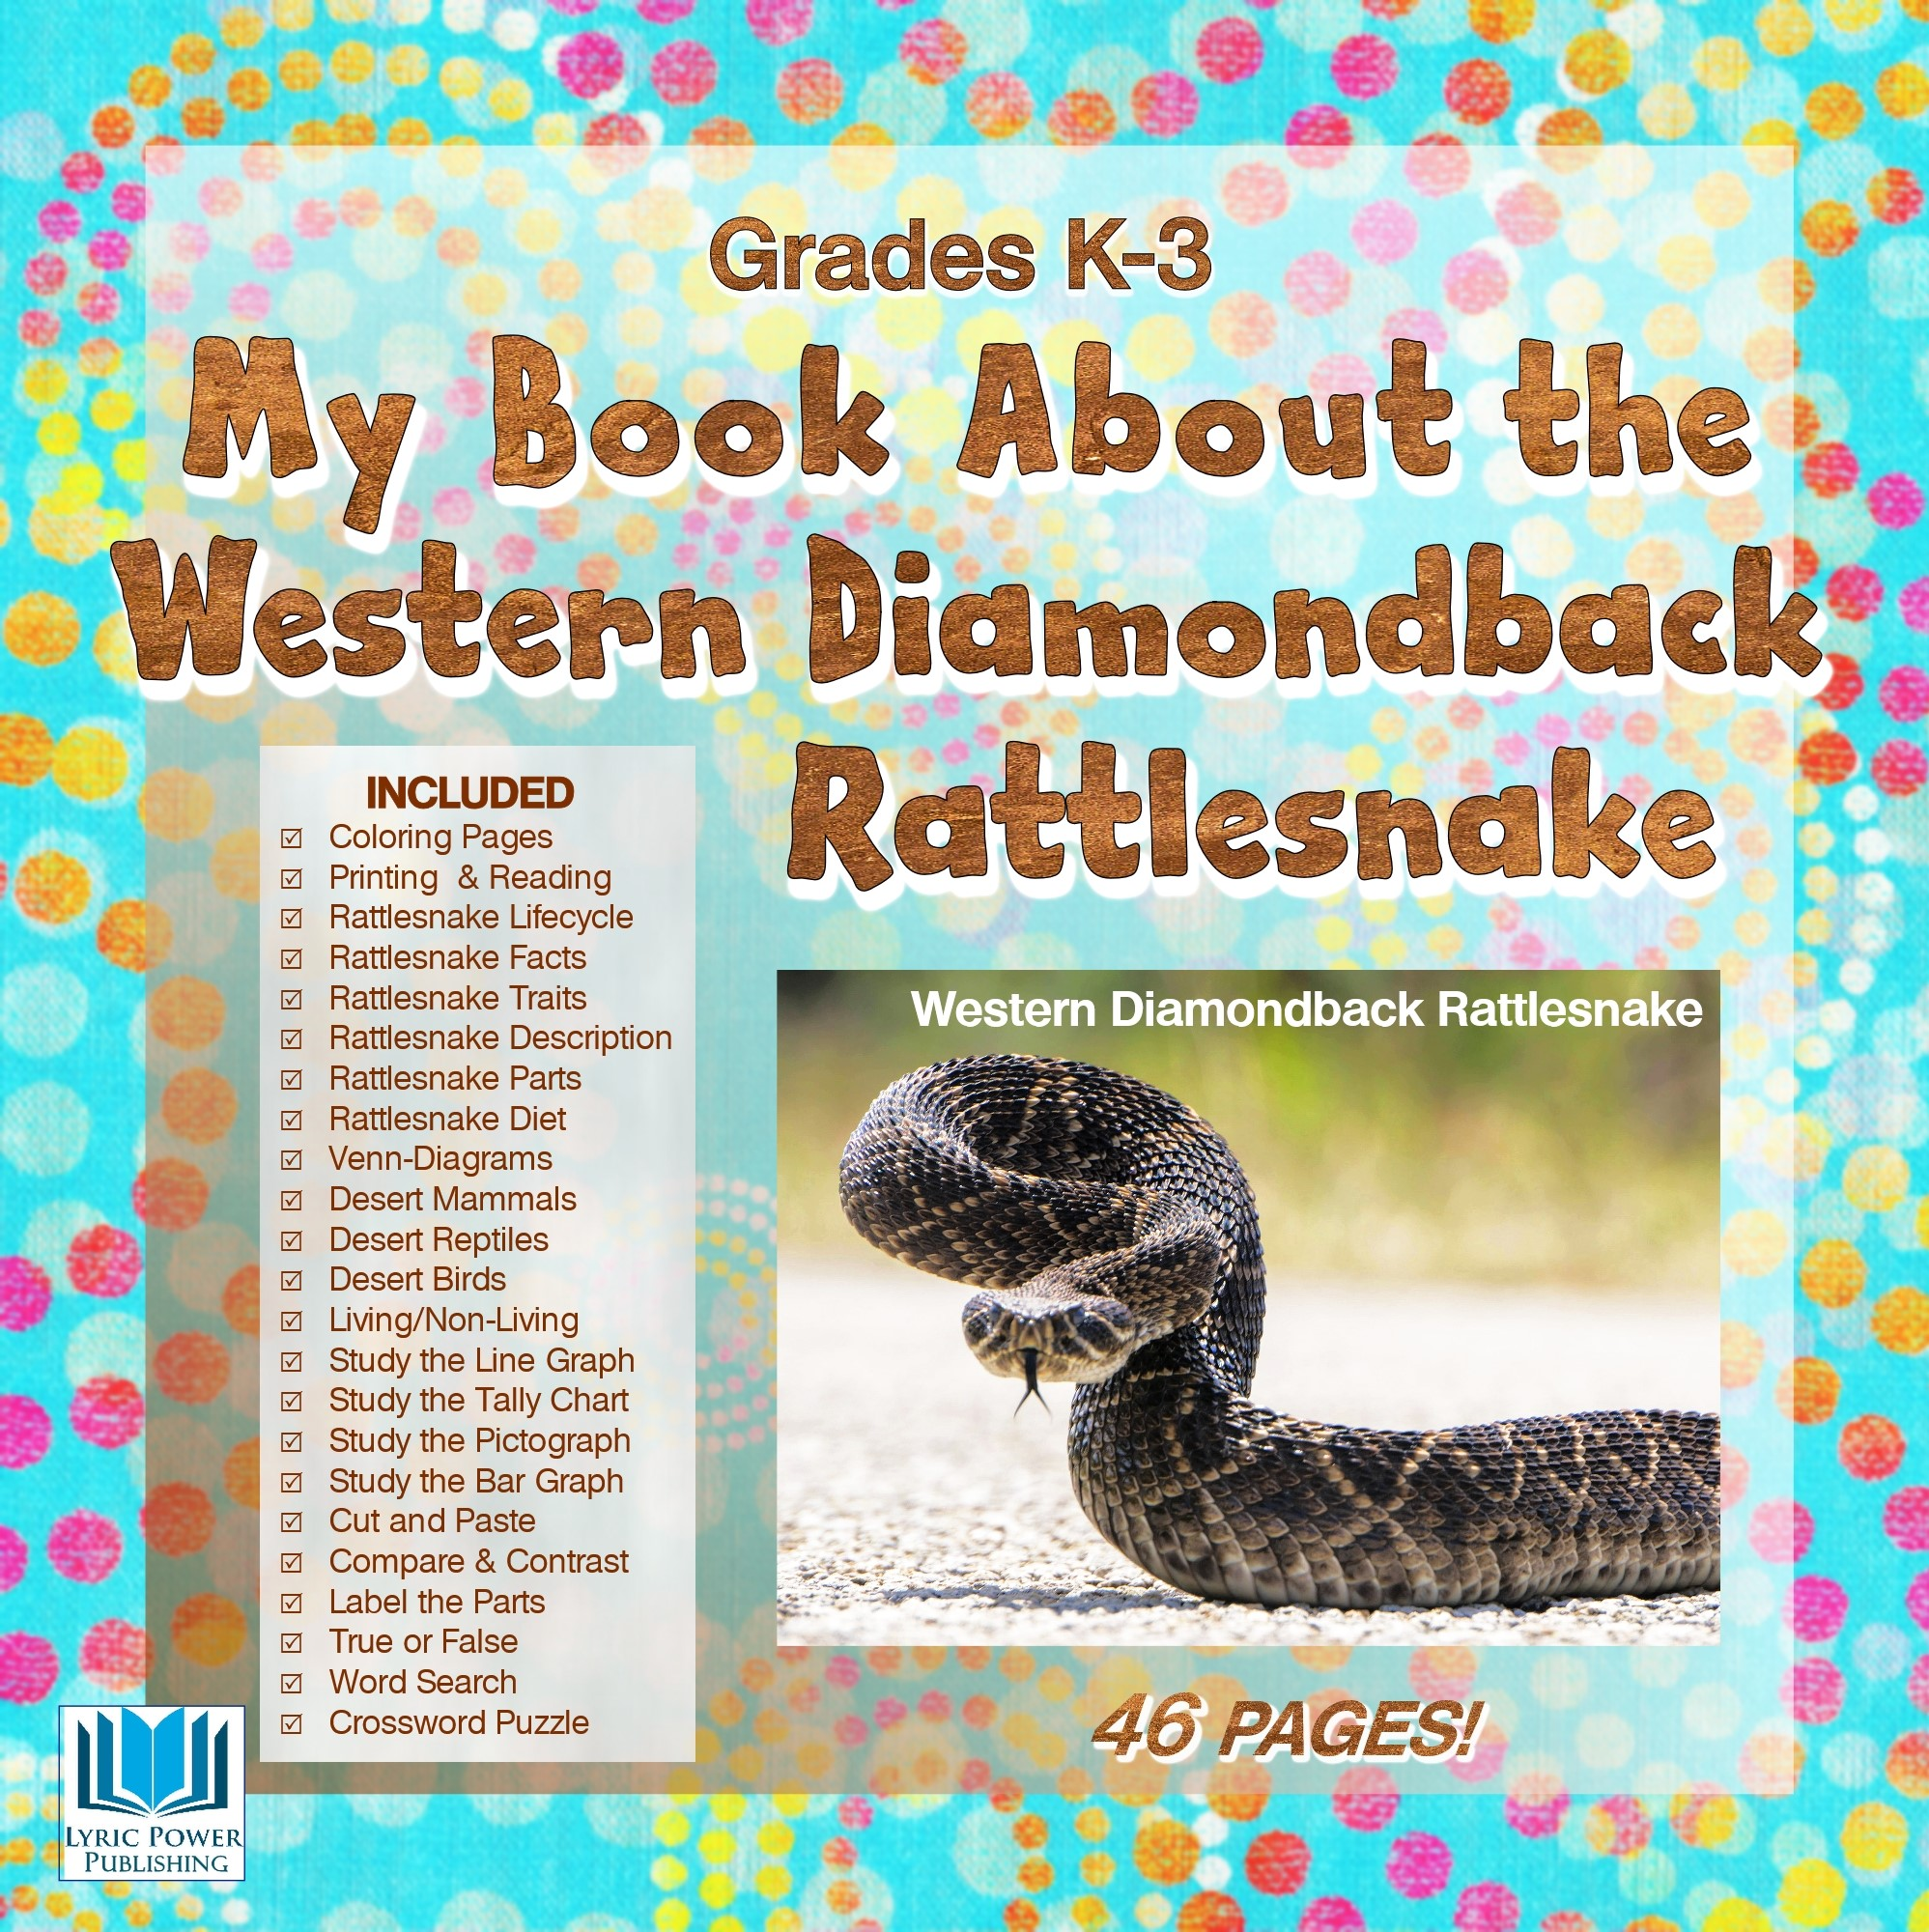 colorful cover of children's educational workbook all about the Western Diamondback Rattlesnake, turquoise color with polka dots, with image of rattlesnake and a list of the 46 workbook pages